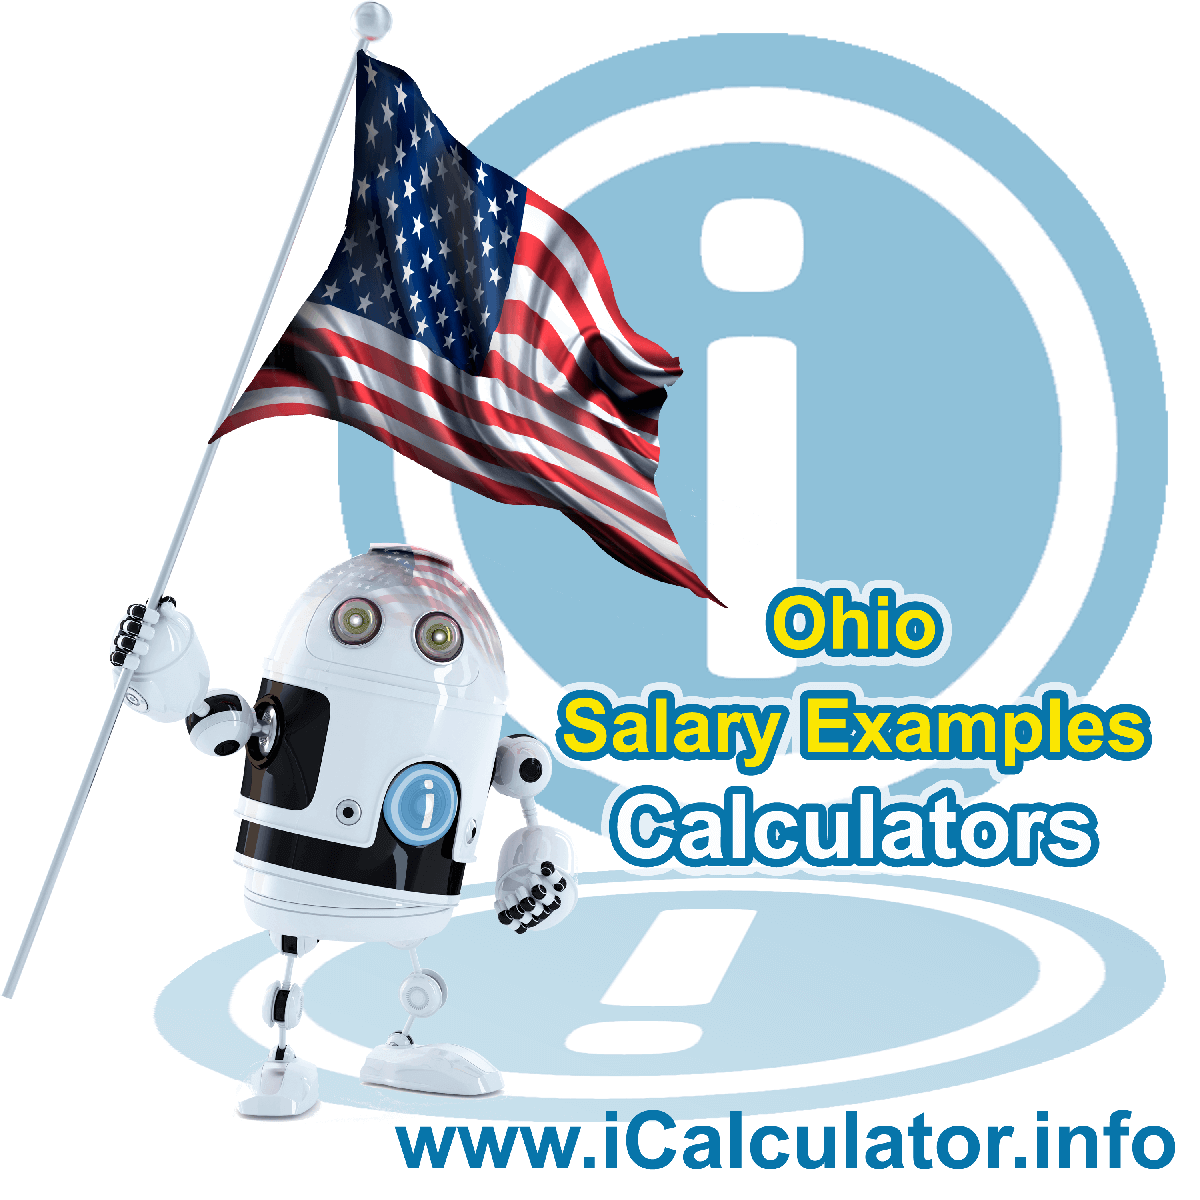 Ohio Salary Example for $240.00 in 2020 | iCalculator | $240.00 salary example for employee and employer paying Ohio State tincome taxes. Detailed salary after tax calculation including Ohio State Tax, Federal State Tax, Medicare Deductions, Social Security, Capital Gains and other income tax and salary deductions complete with supporting Ohio state tax tables